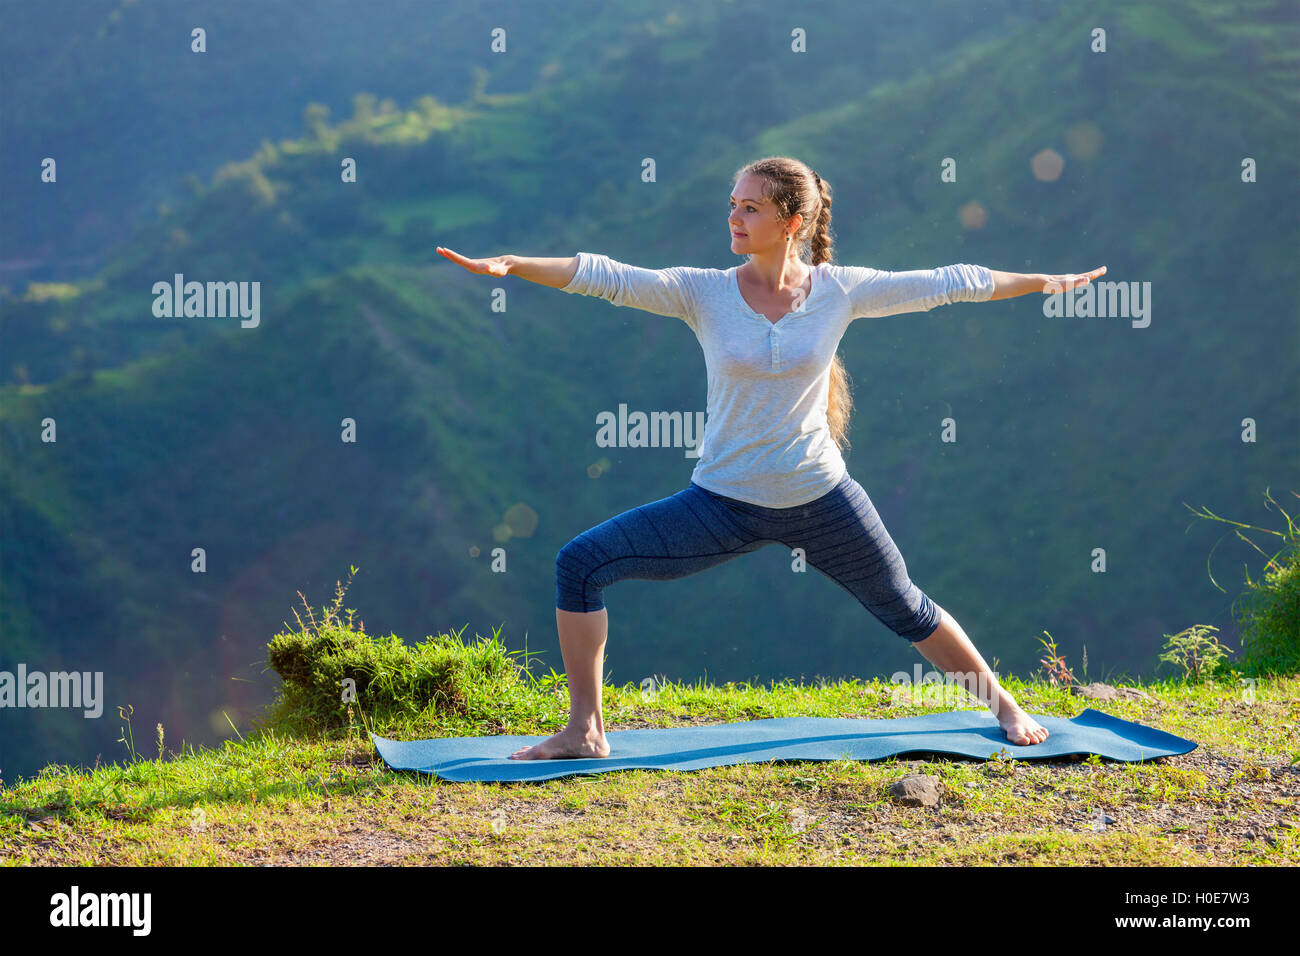 Woman doing yoga asana Virabhadrasana 2 - Warrior pose outdoors - Stock Image